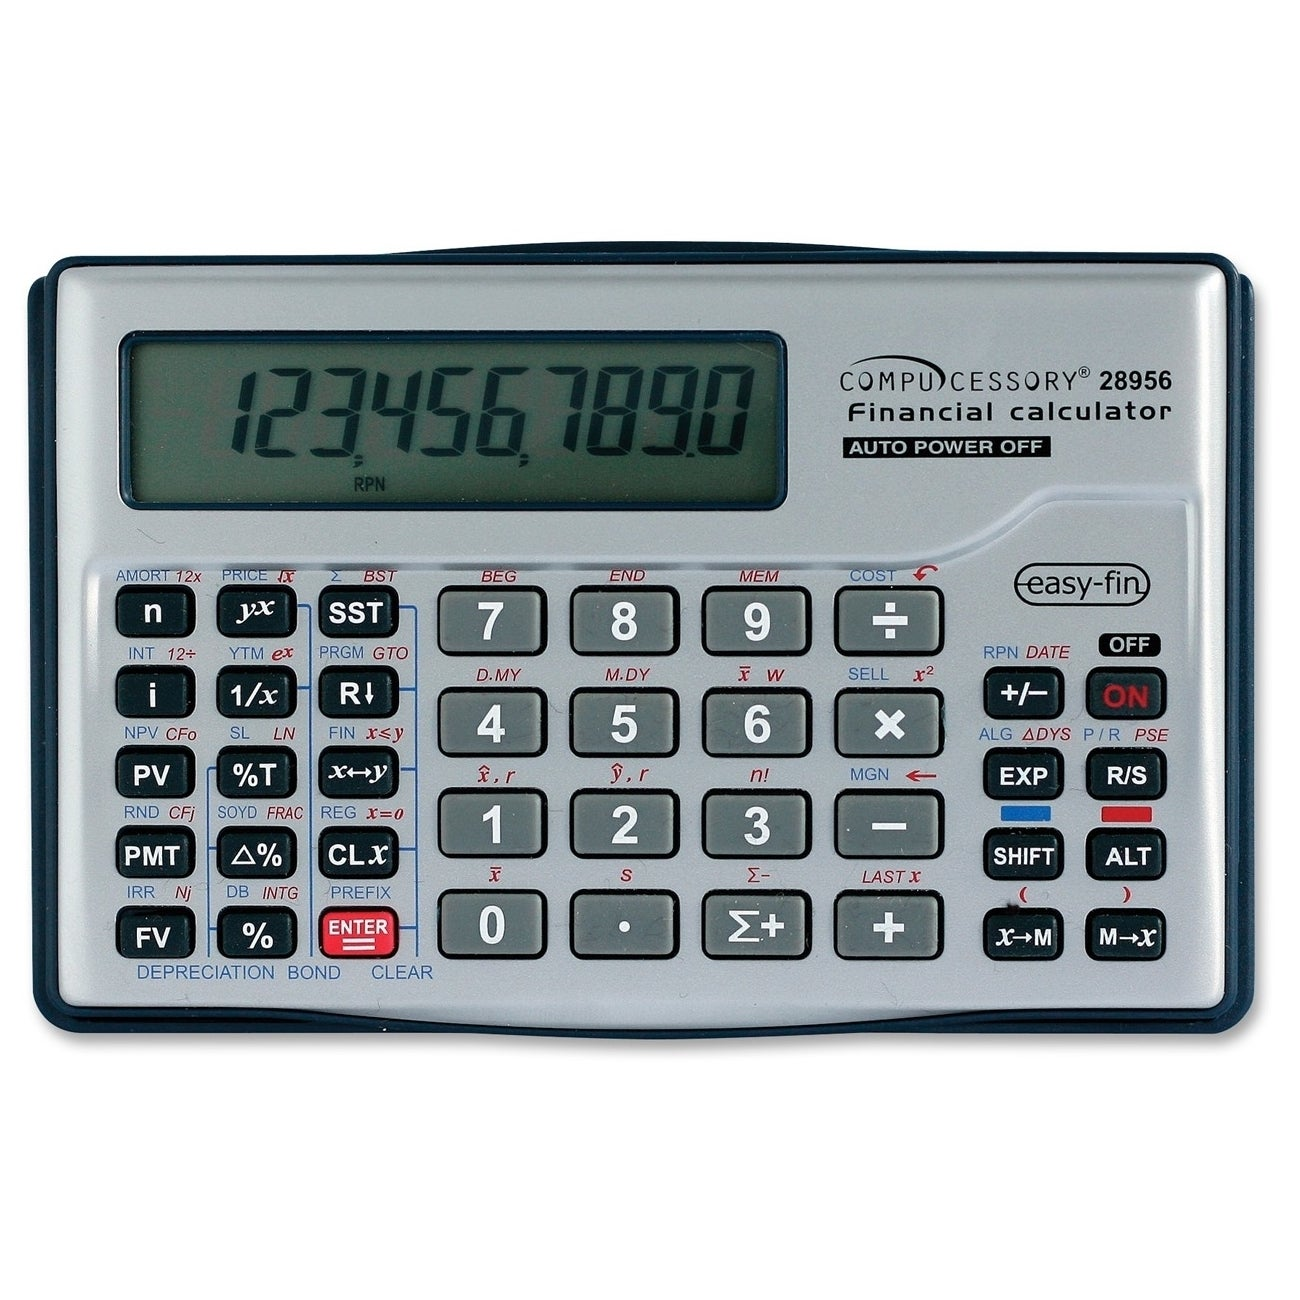 Shop Black Friday Deals On Compucessory Financial Calculator Overstock 11166034